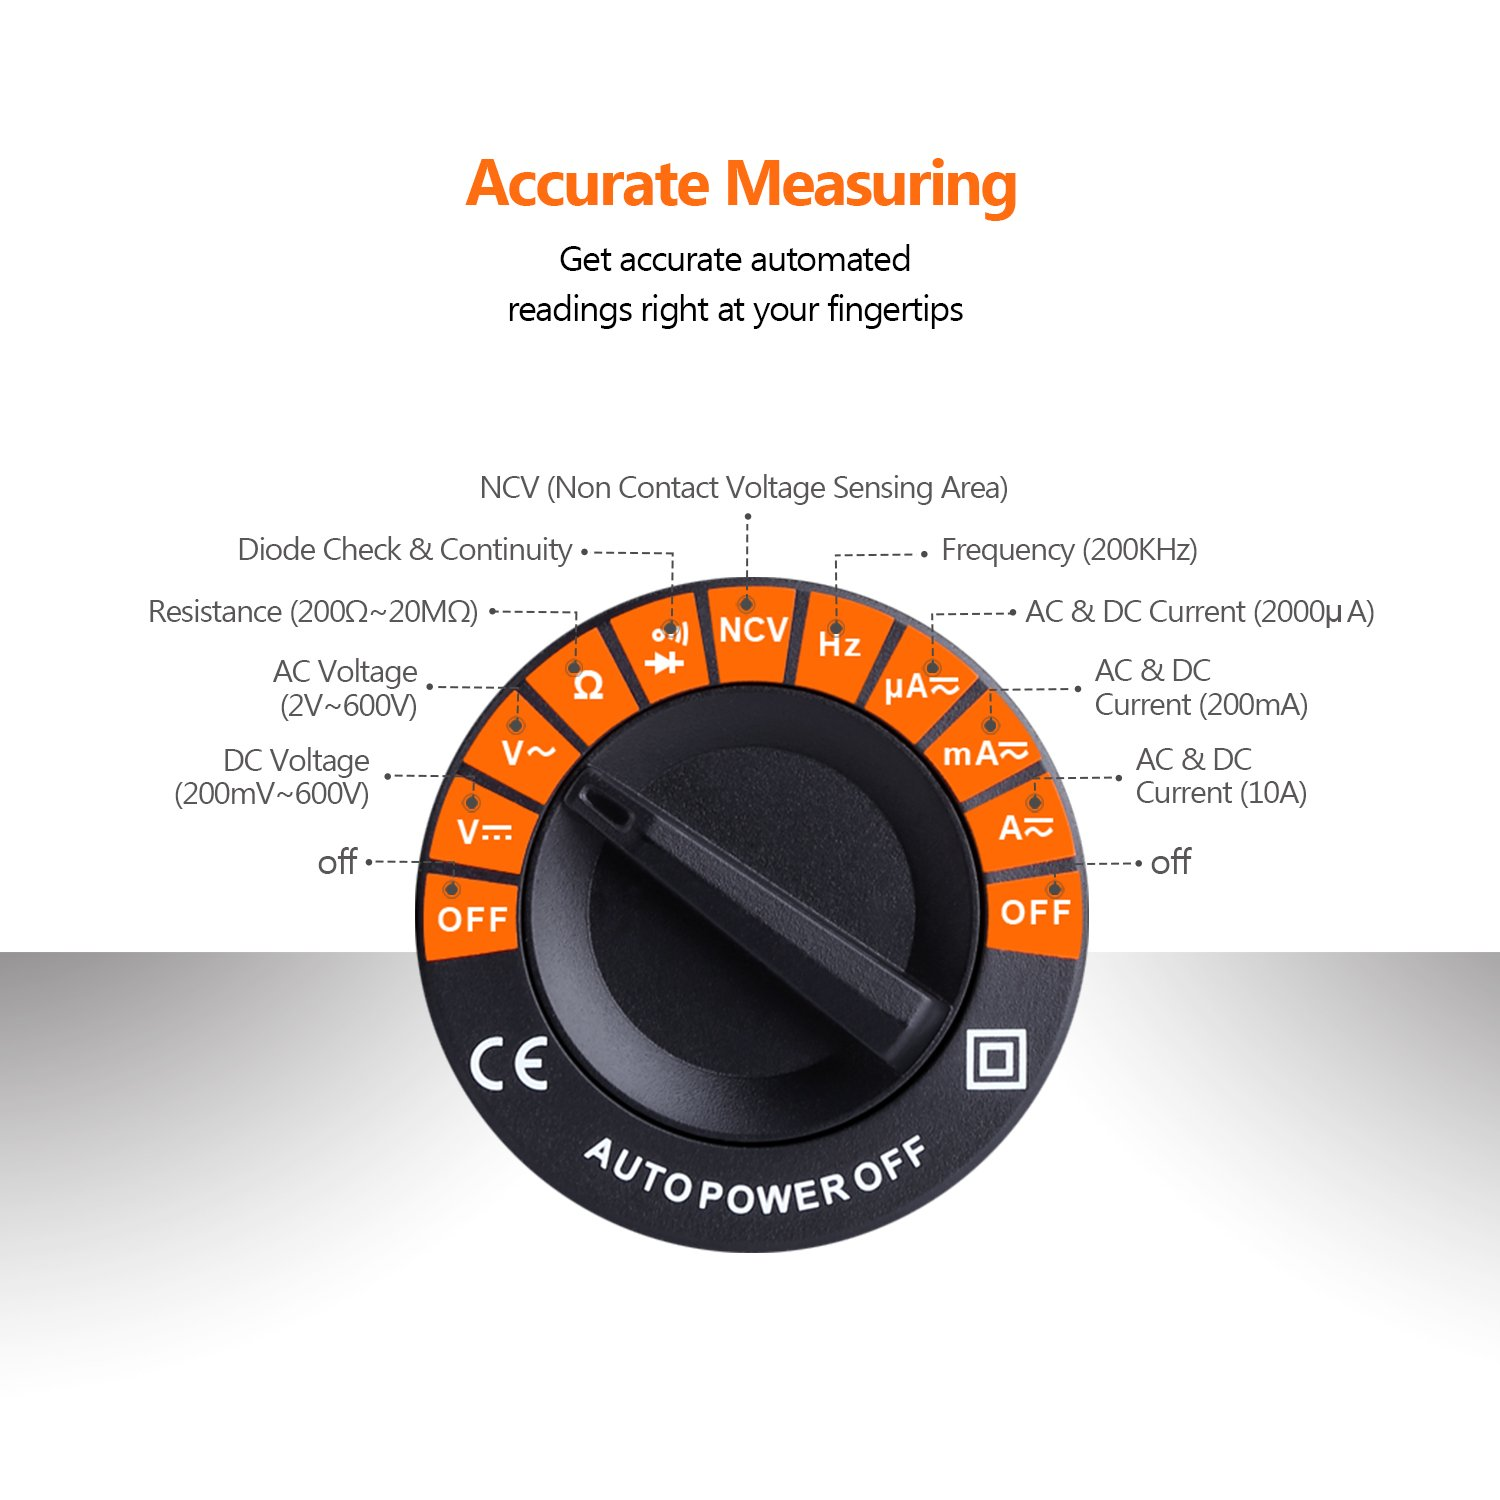 Tacklife Dm02a Advanced Digital Multimeter Auto Ranging Electronic Dc Voltages To 2 Accuracy Power Content From Design Amp Volt Ohm Voltage With Diode And Continuity Test Tester Backlight Lcd